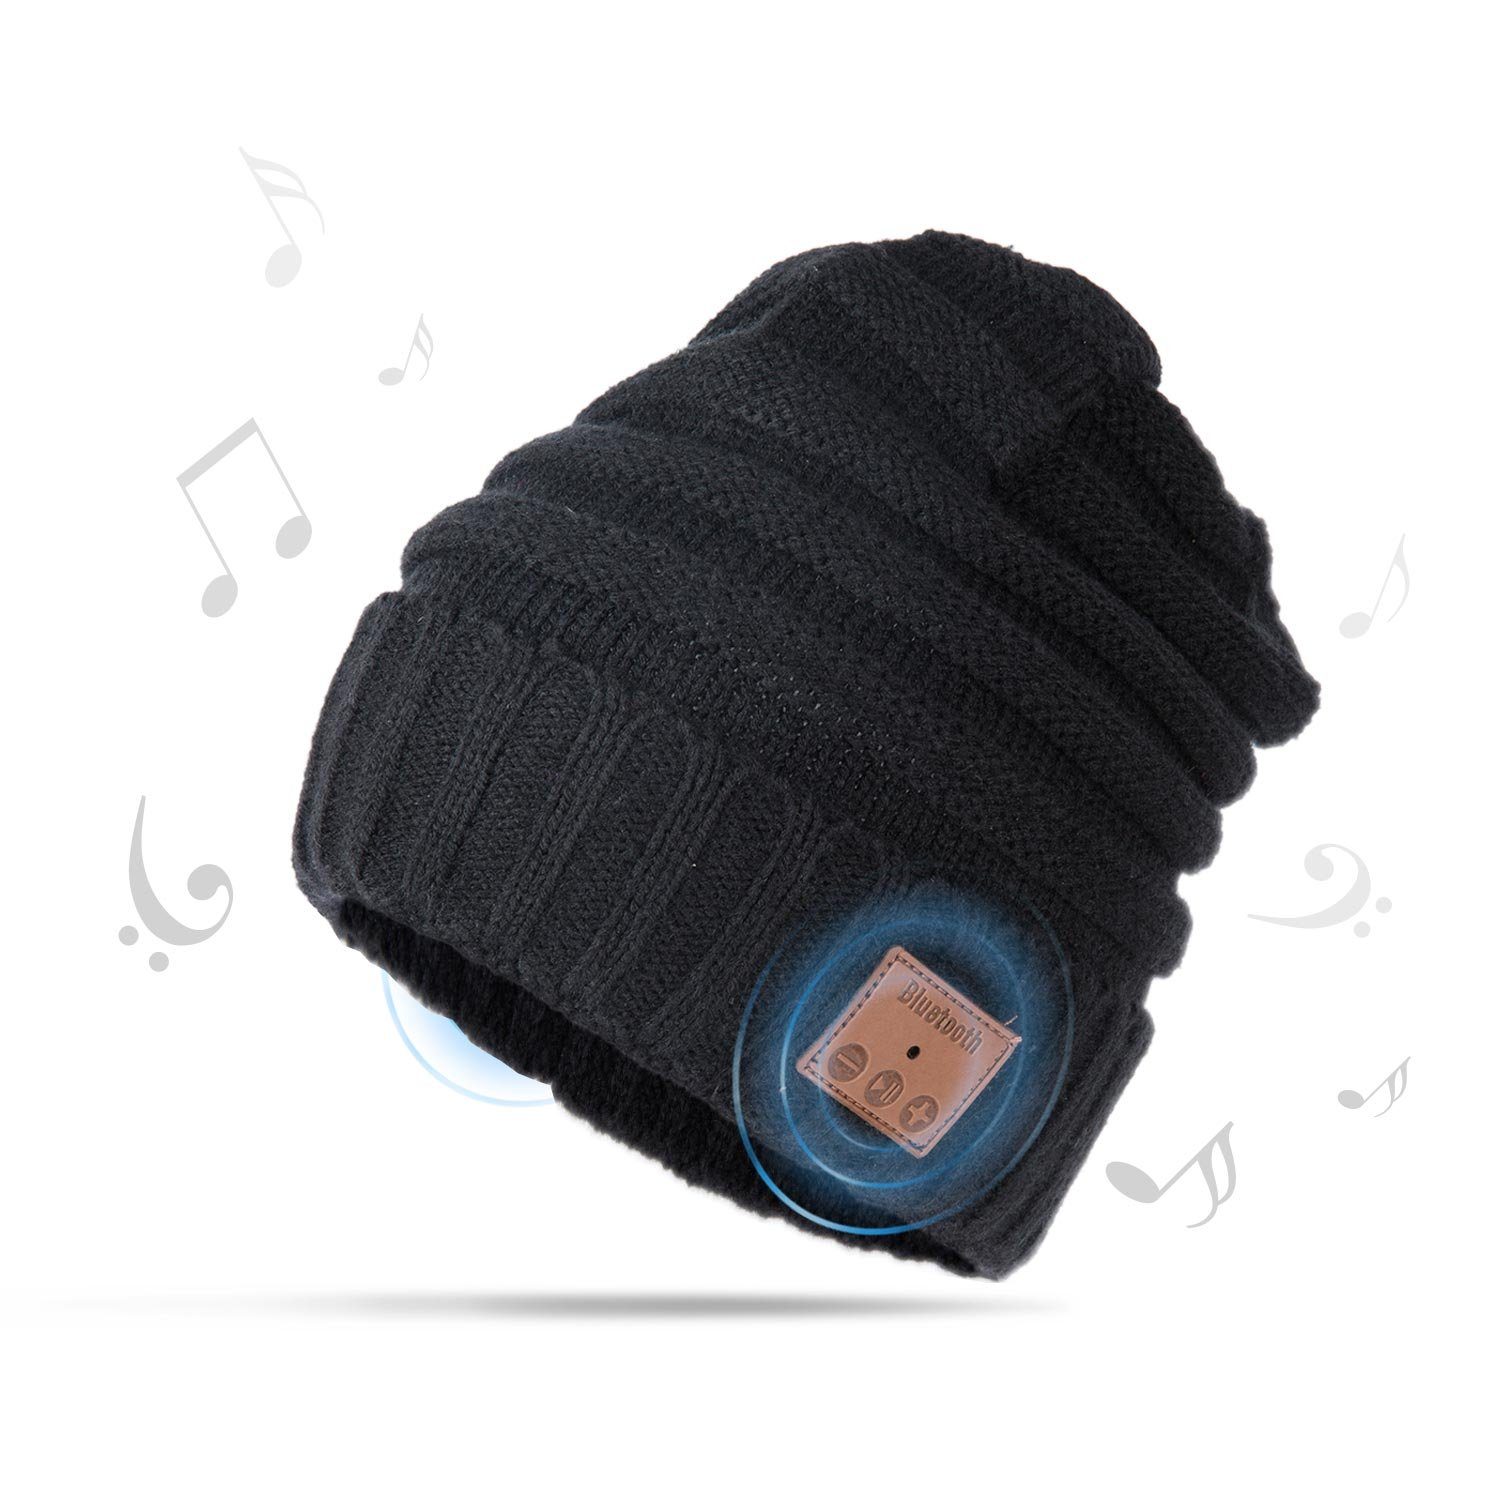 Bluetooth Hat Hands-Free Wireless Speaker Cap for Winter Sports Exercise (Black)